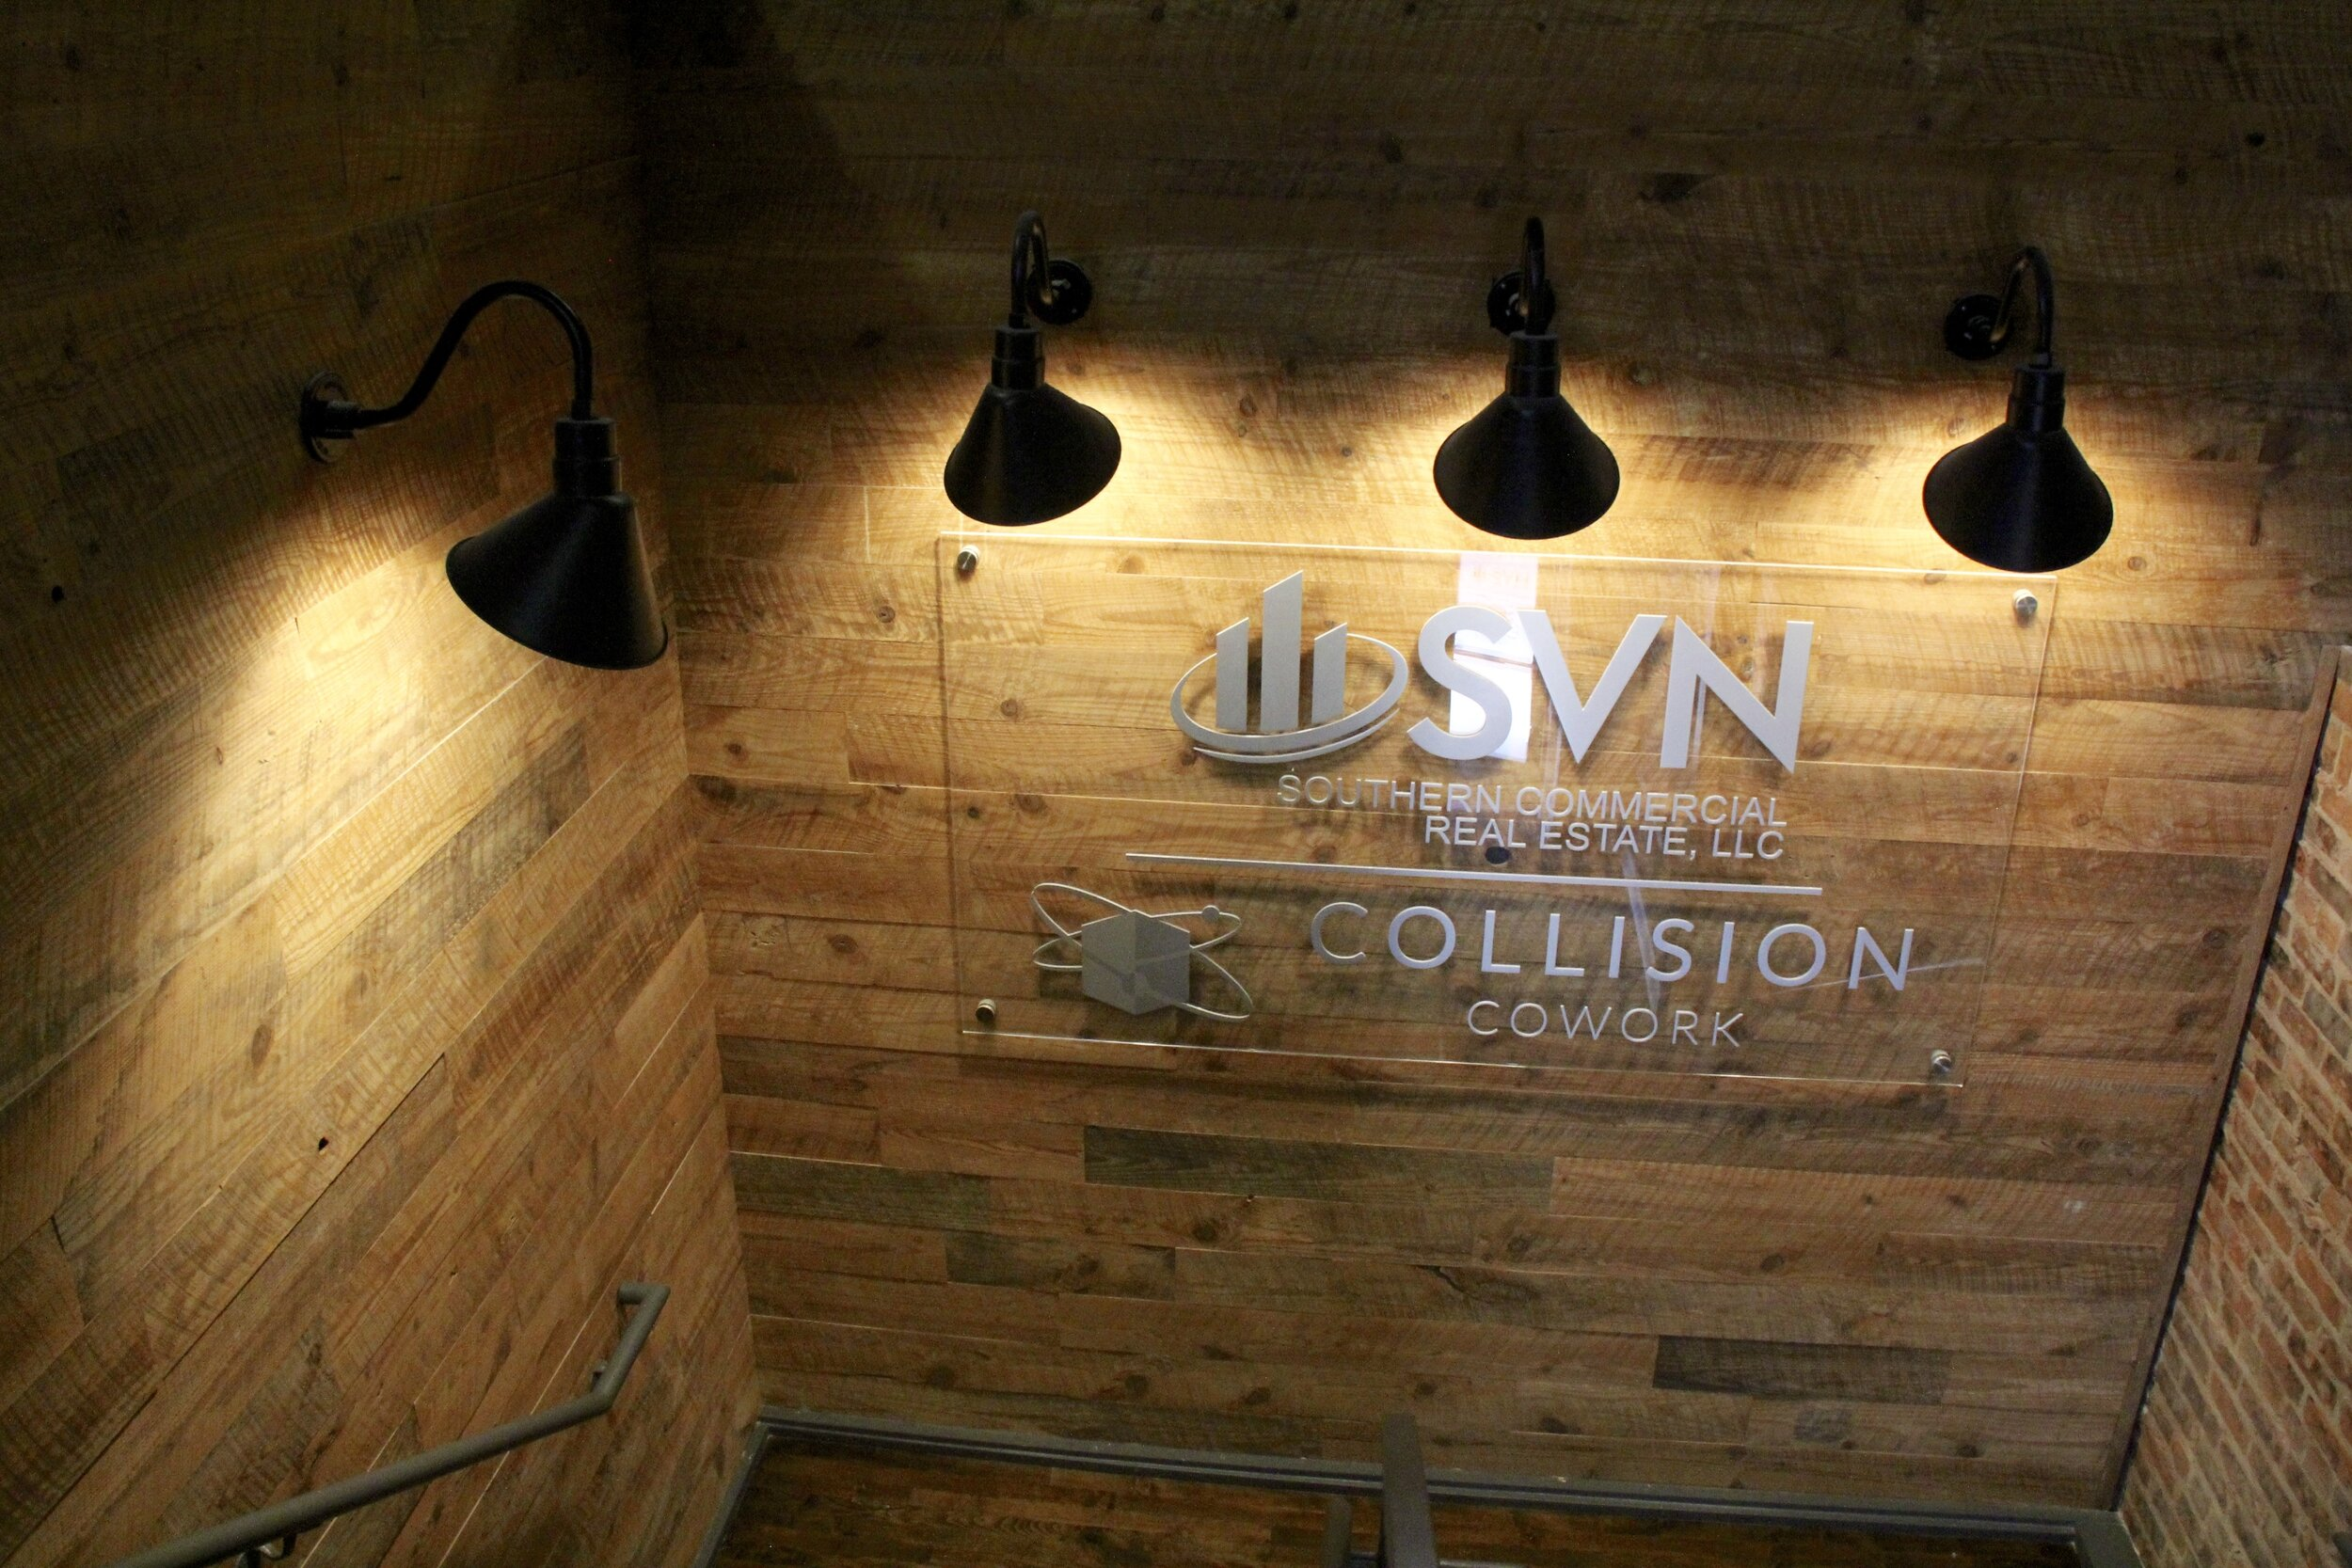 SPERRY VAN NESS - Adaptive Reuse project for the main offices of SVN [Southern Commercial Real Estate, LLC]